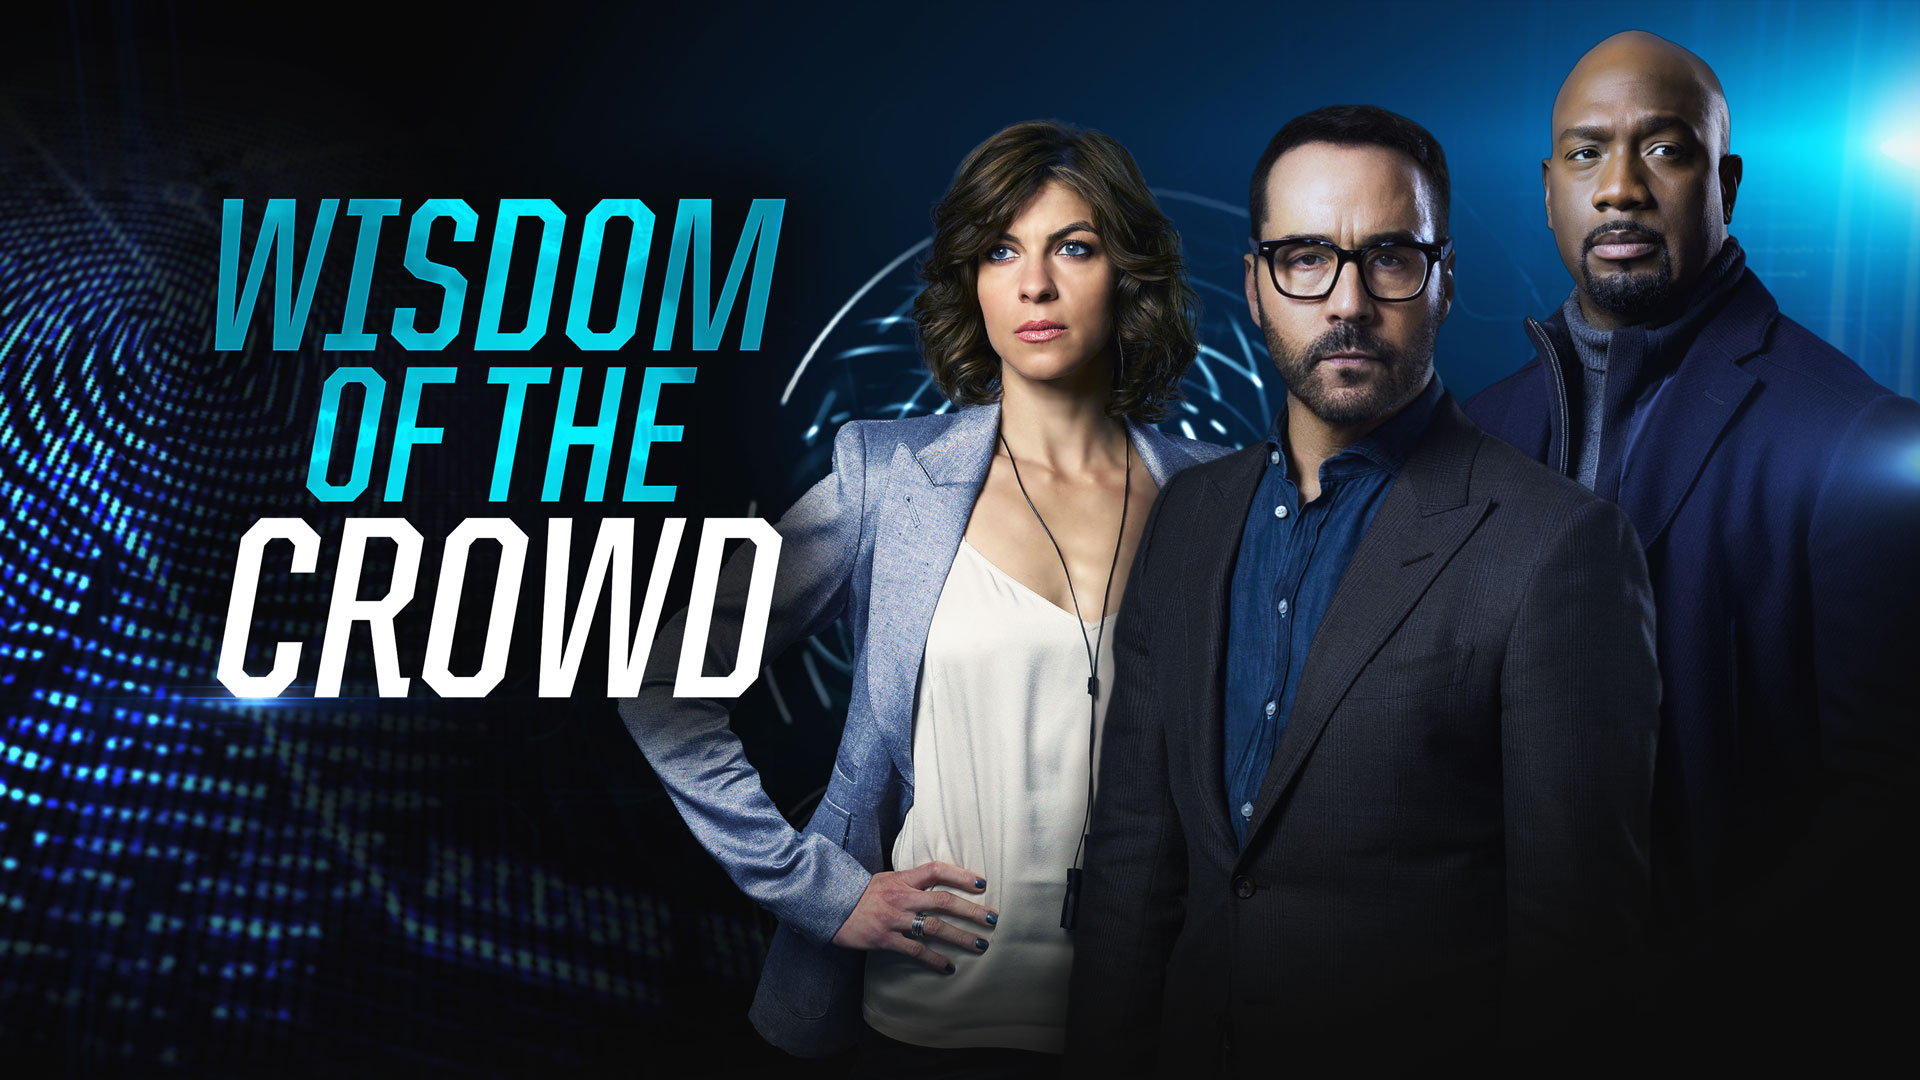 WISDOM OF THE CROWD Review: